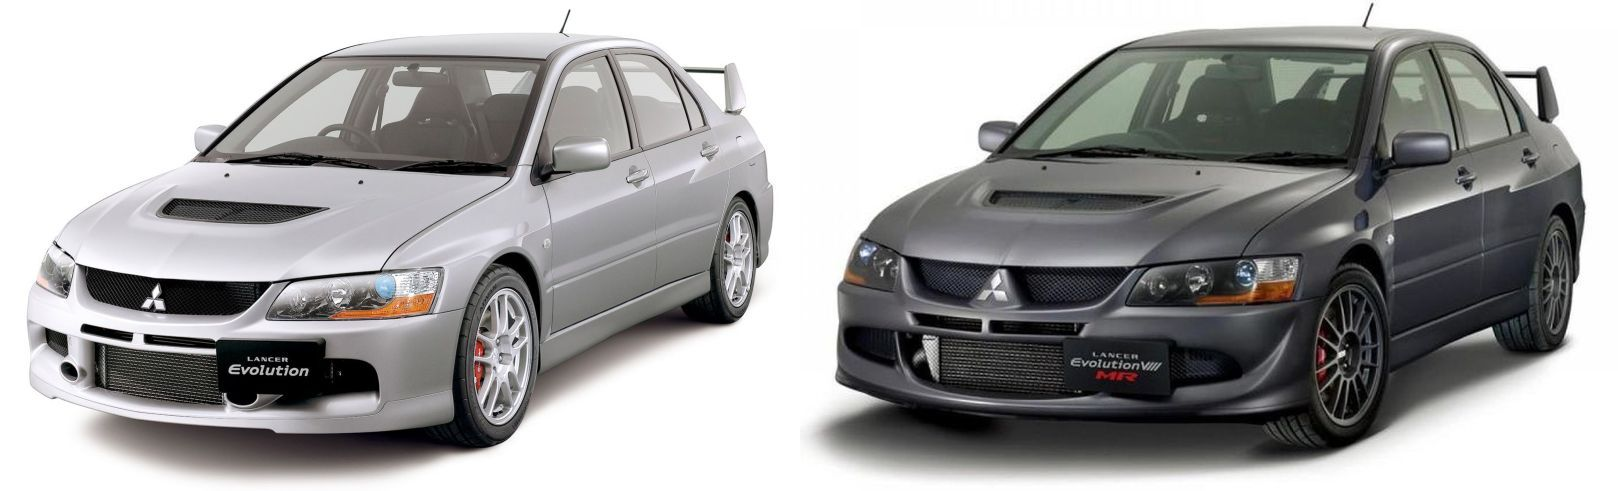 2004 Mitsubishi Lancer EVO 8 GSR and MR